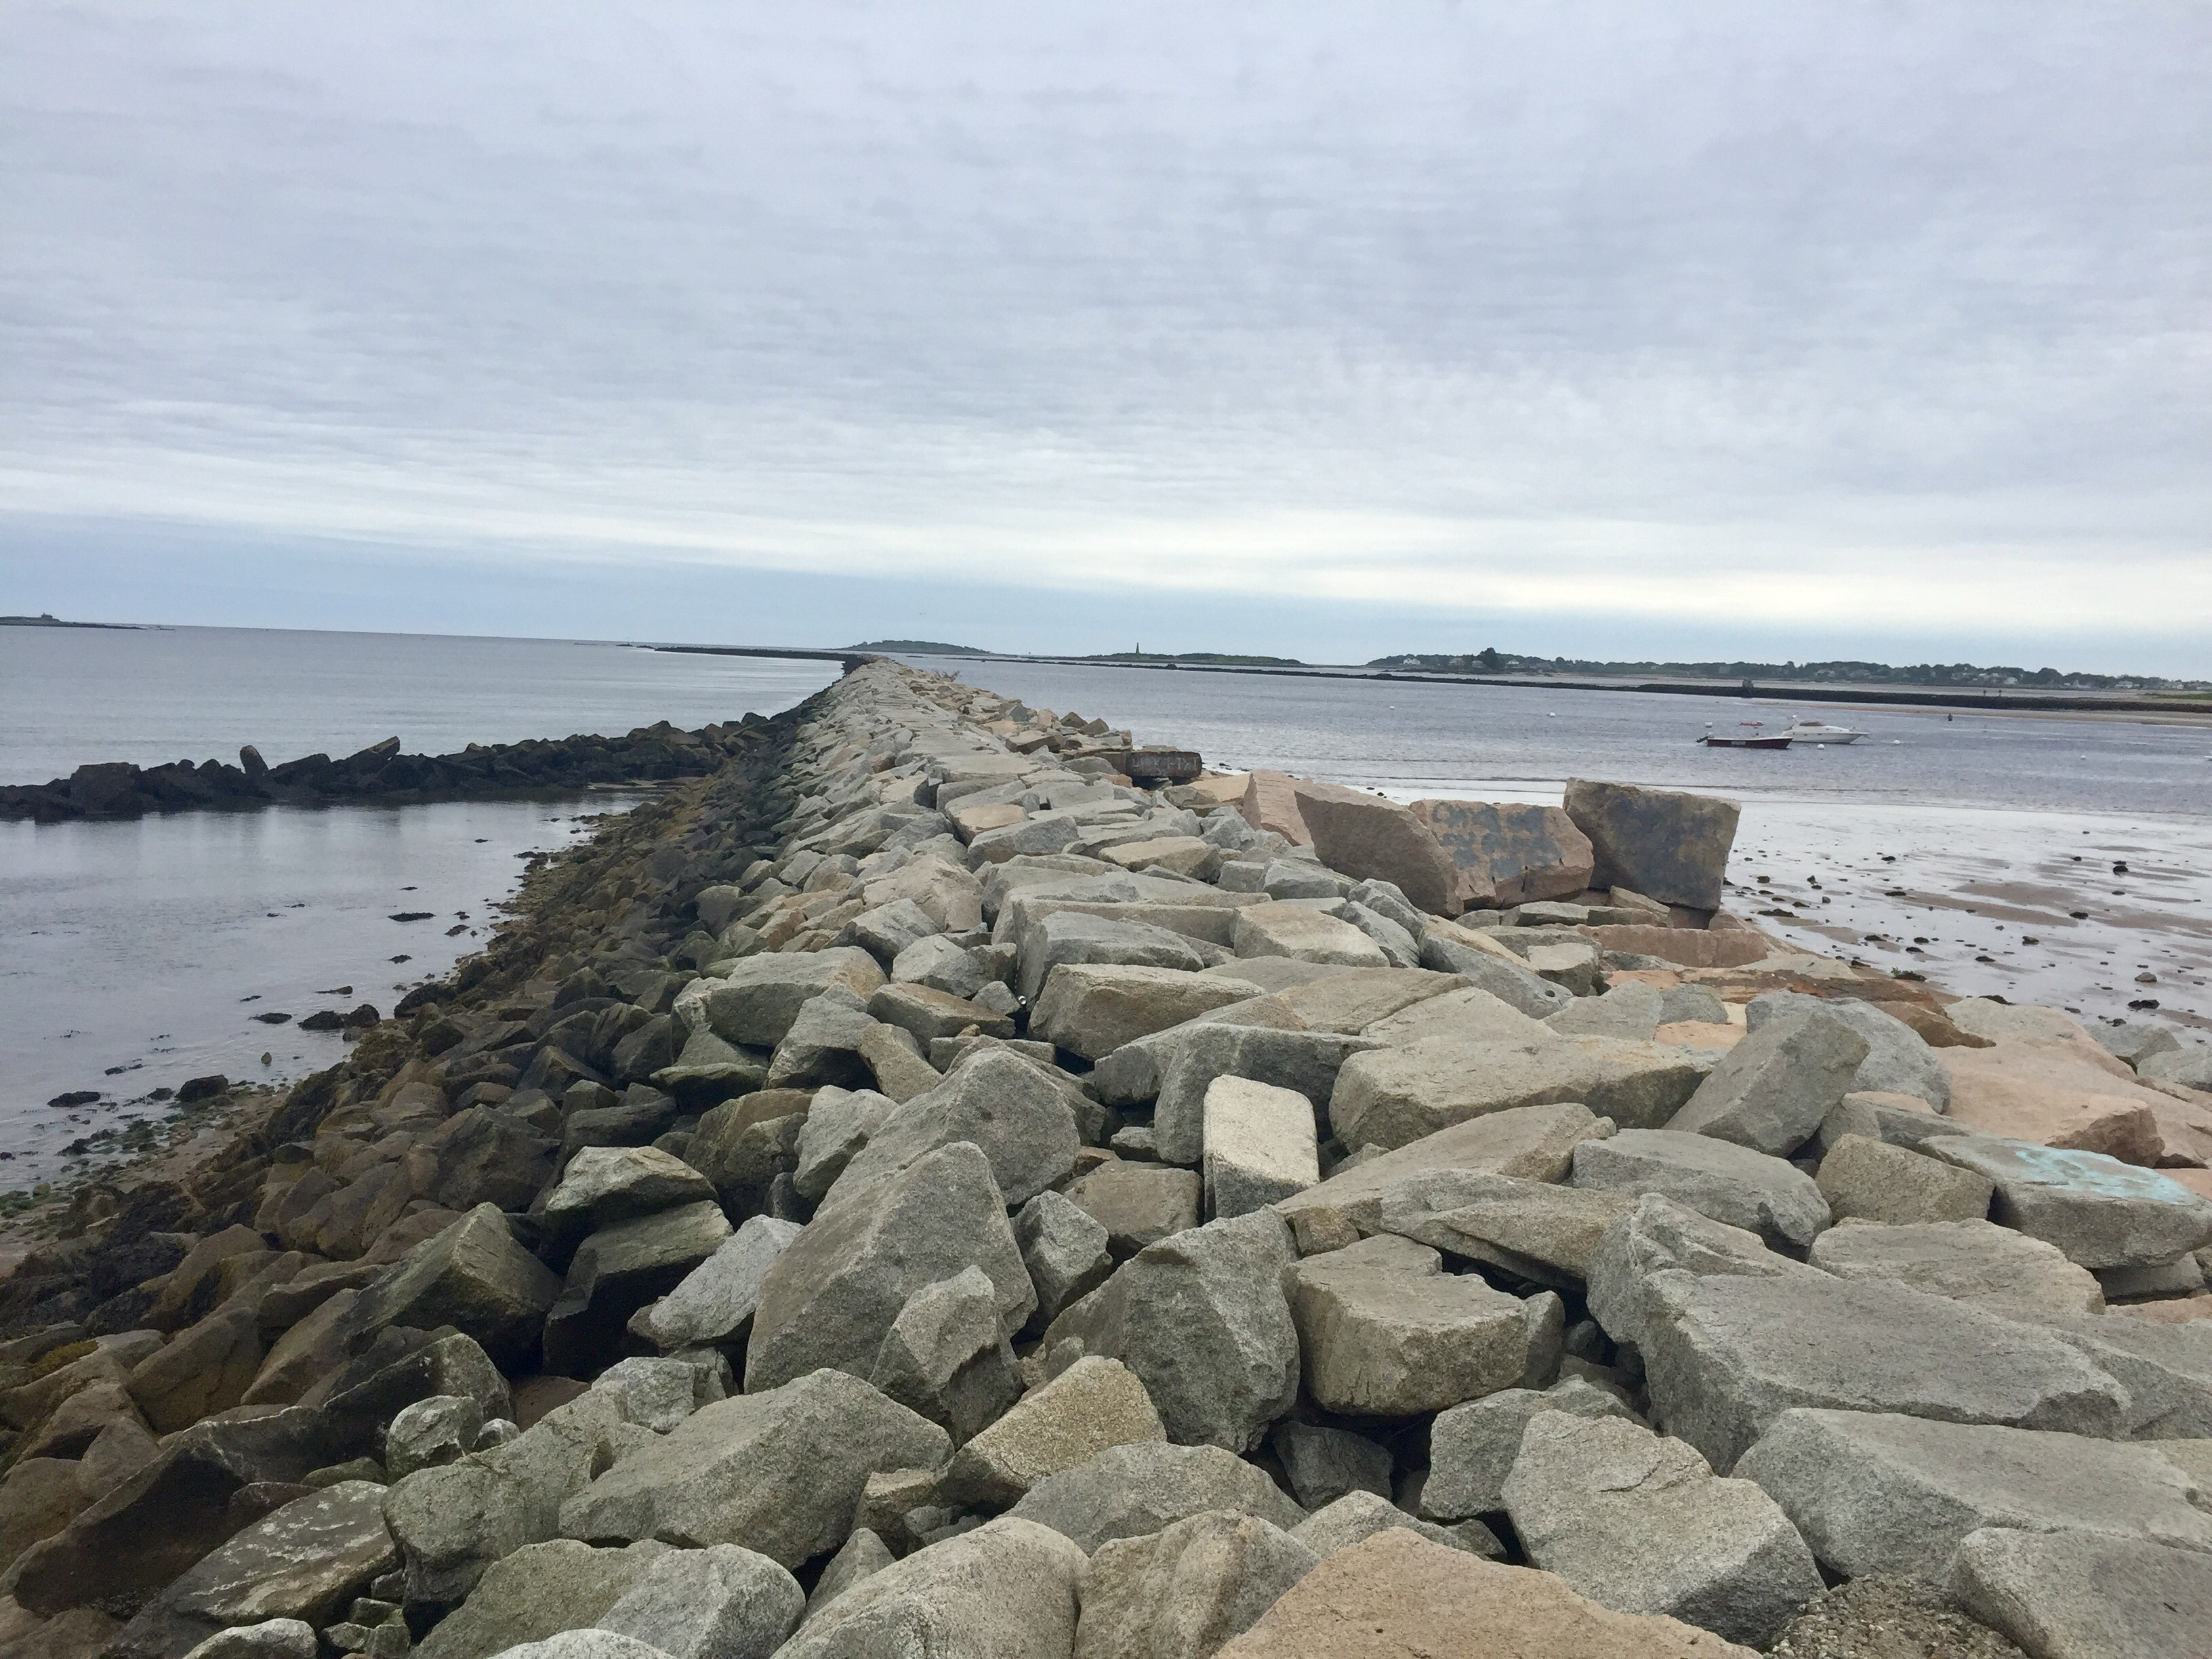 The Saco Jetty, as seen Friday morning. LIZ GOTTHELF/Journal Tribune